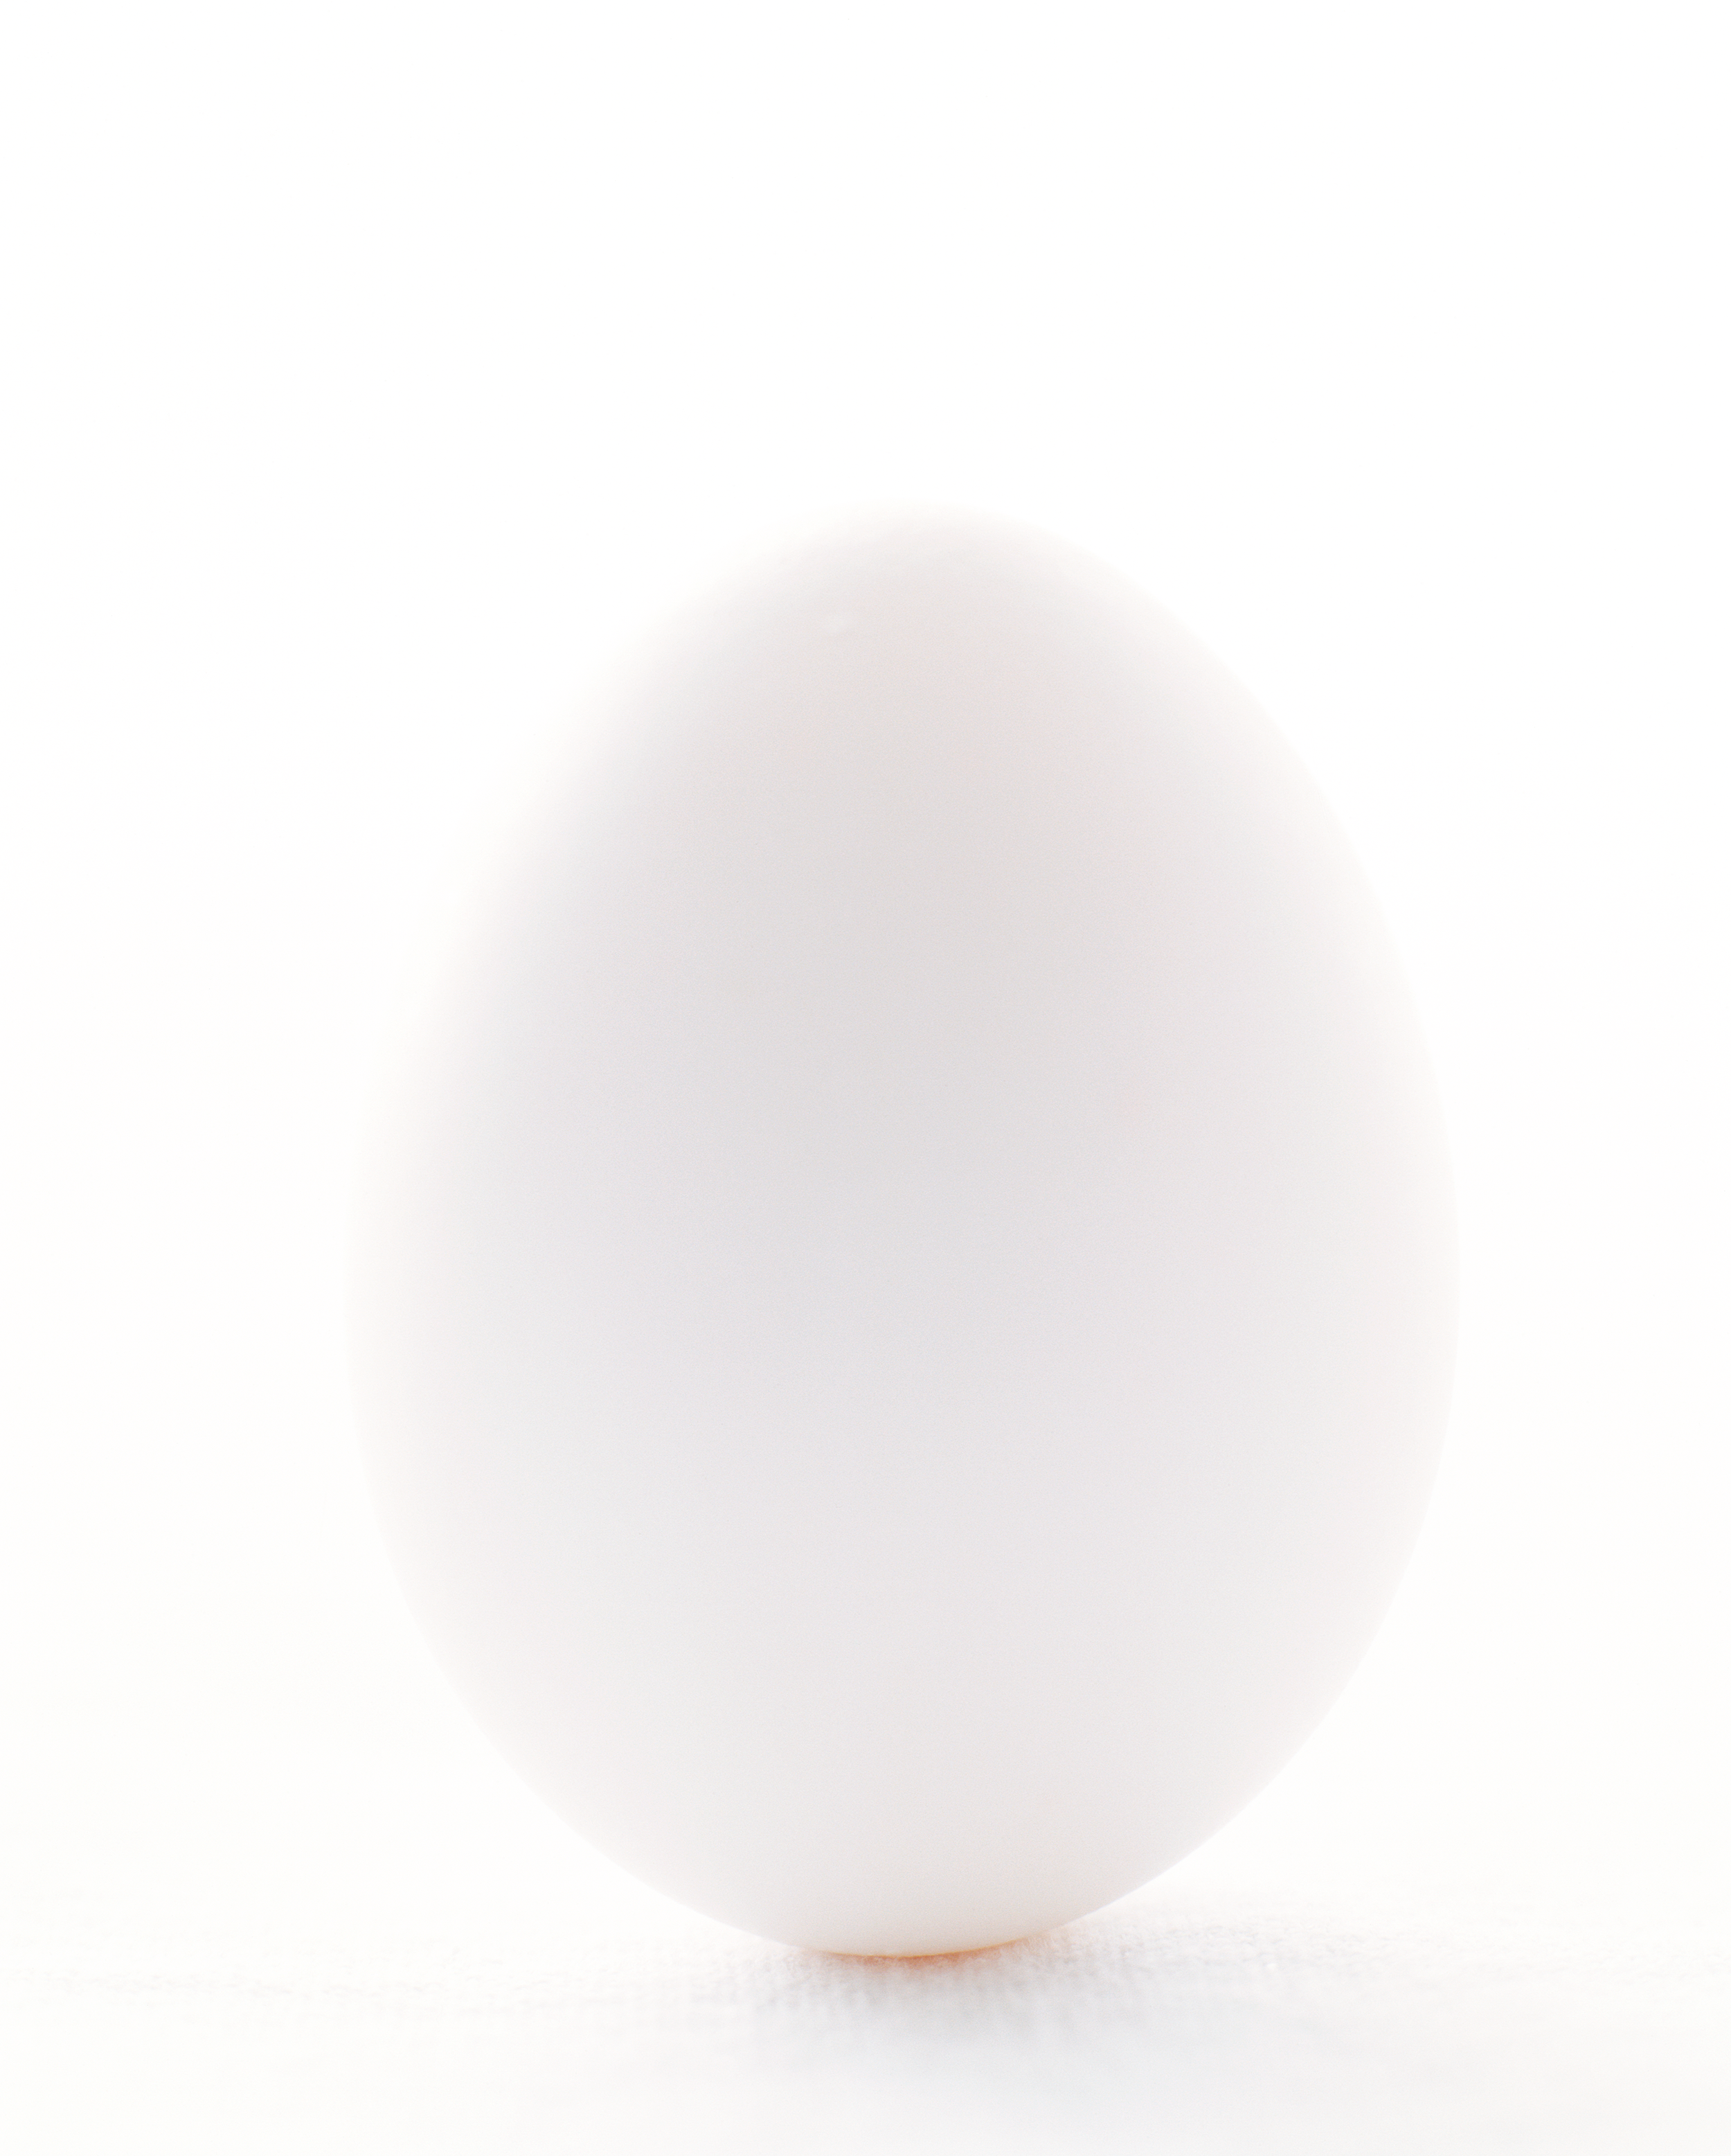 7_egg.png